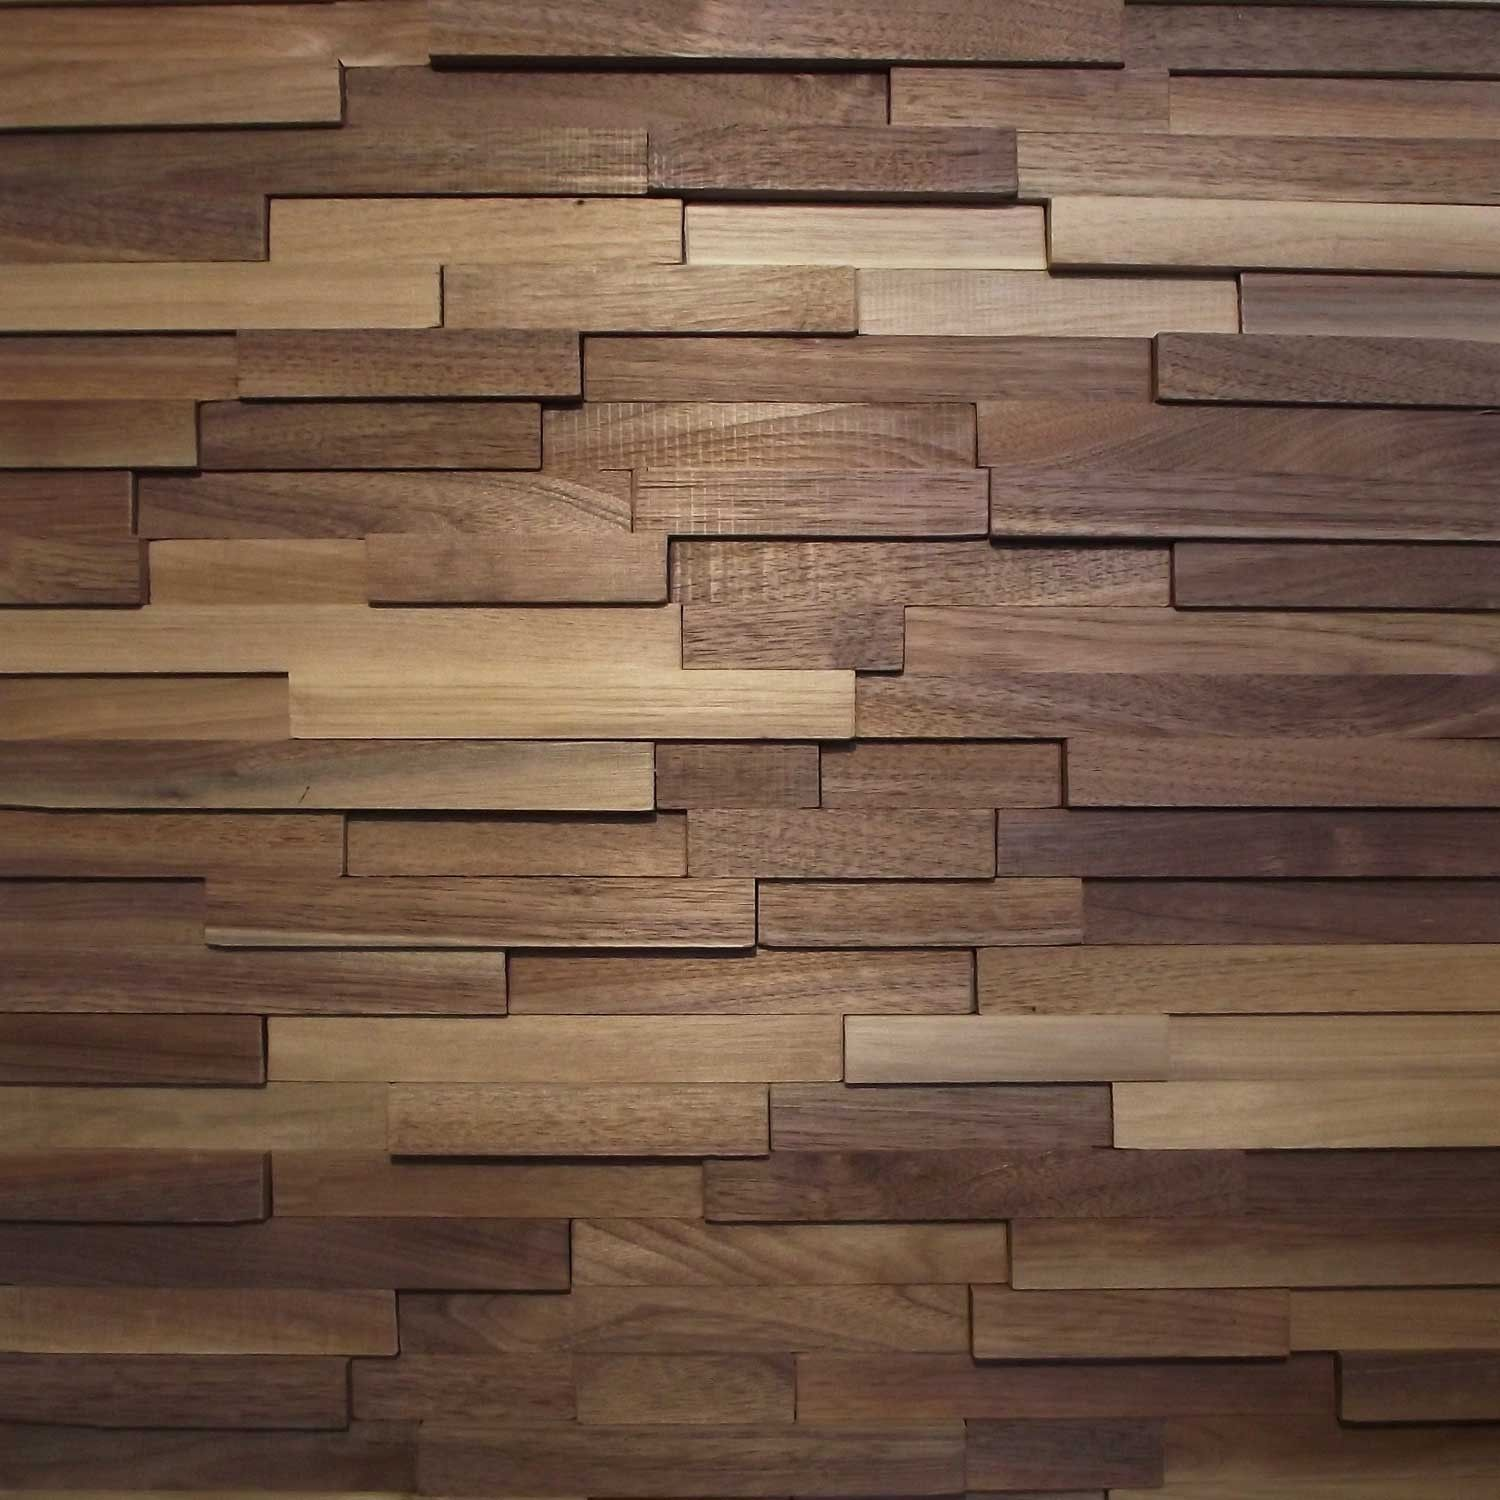 Wood Paneling For Walls Designs Modern Wood Wall Paneling Wall Paneling Ideas Make Up